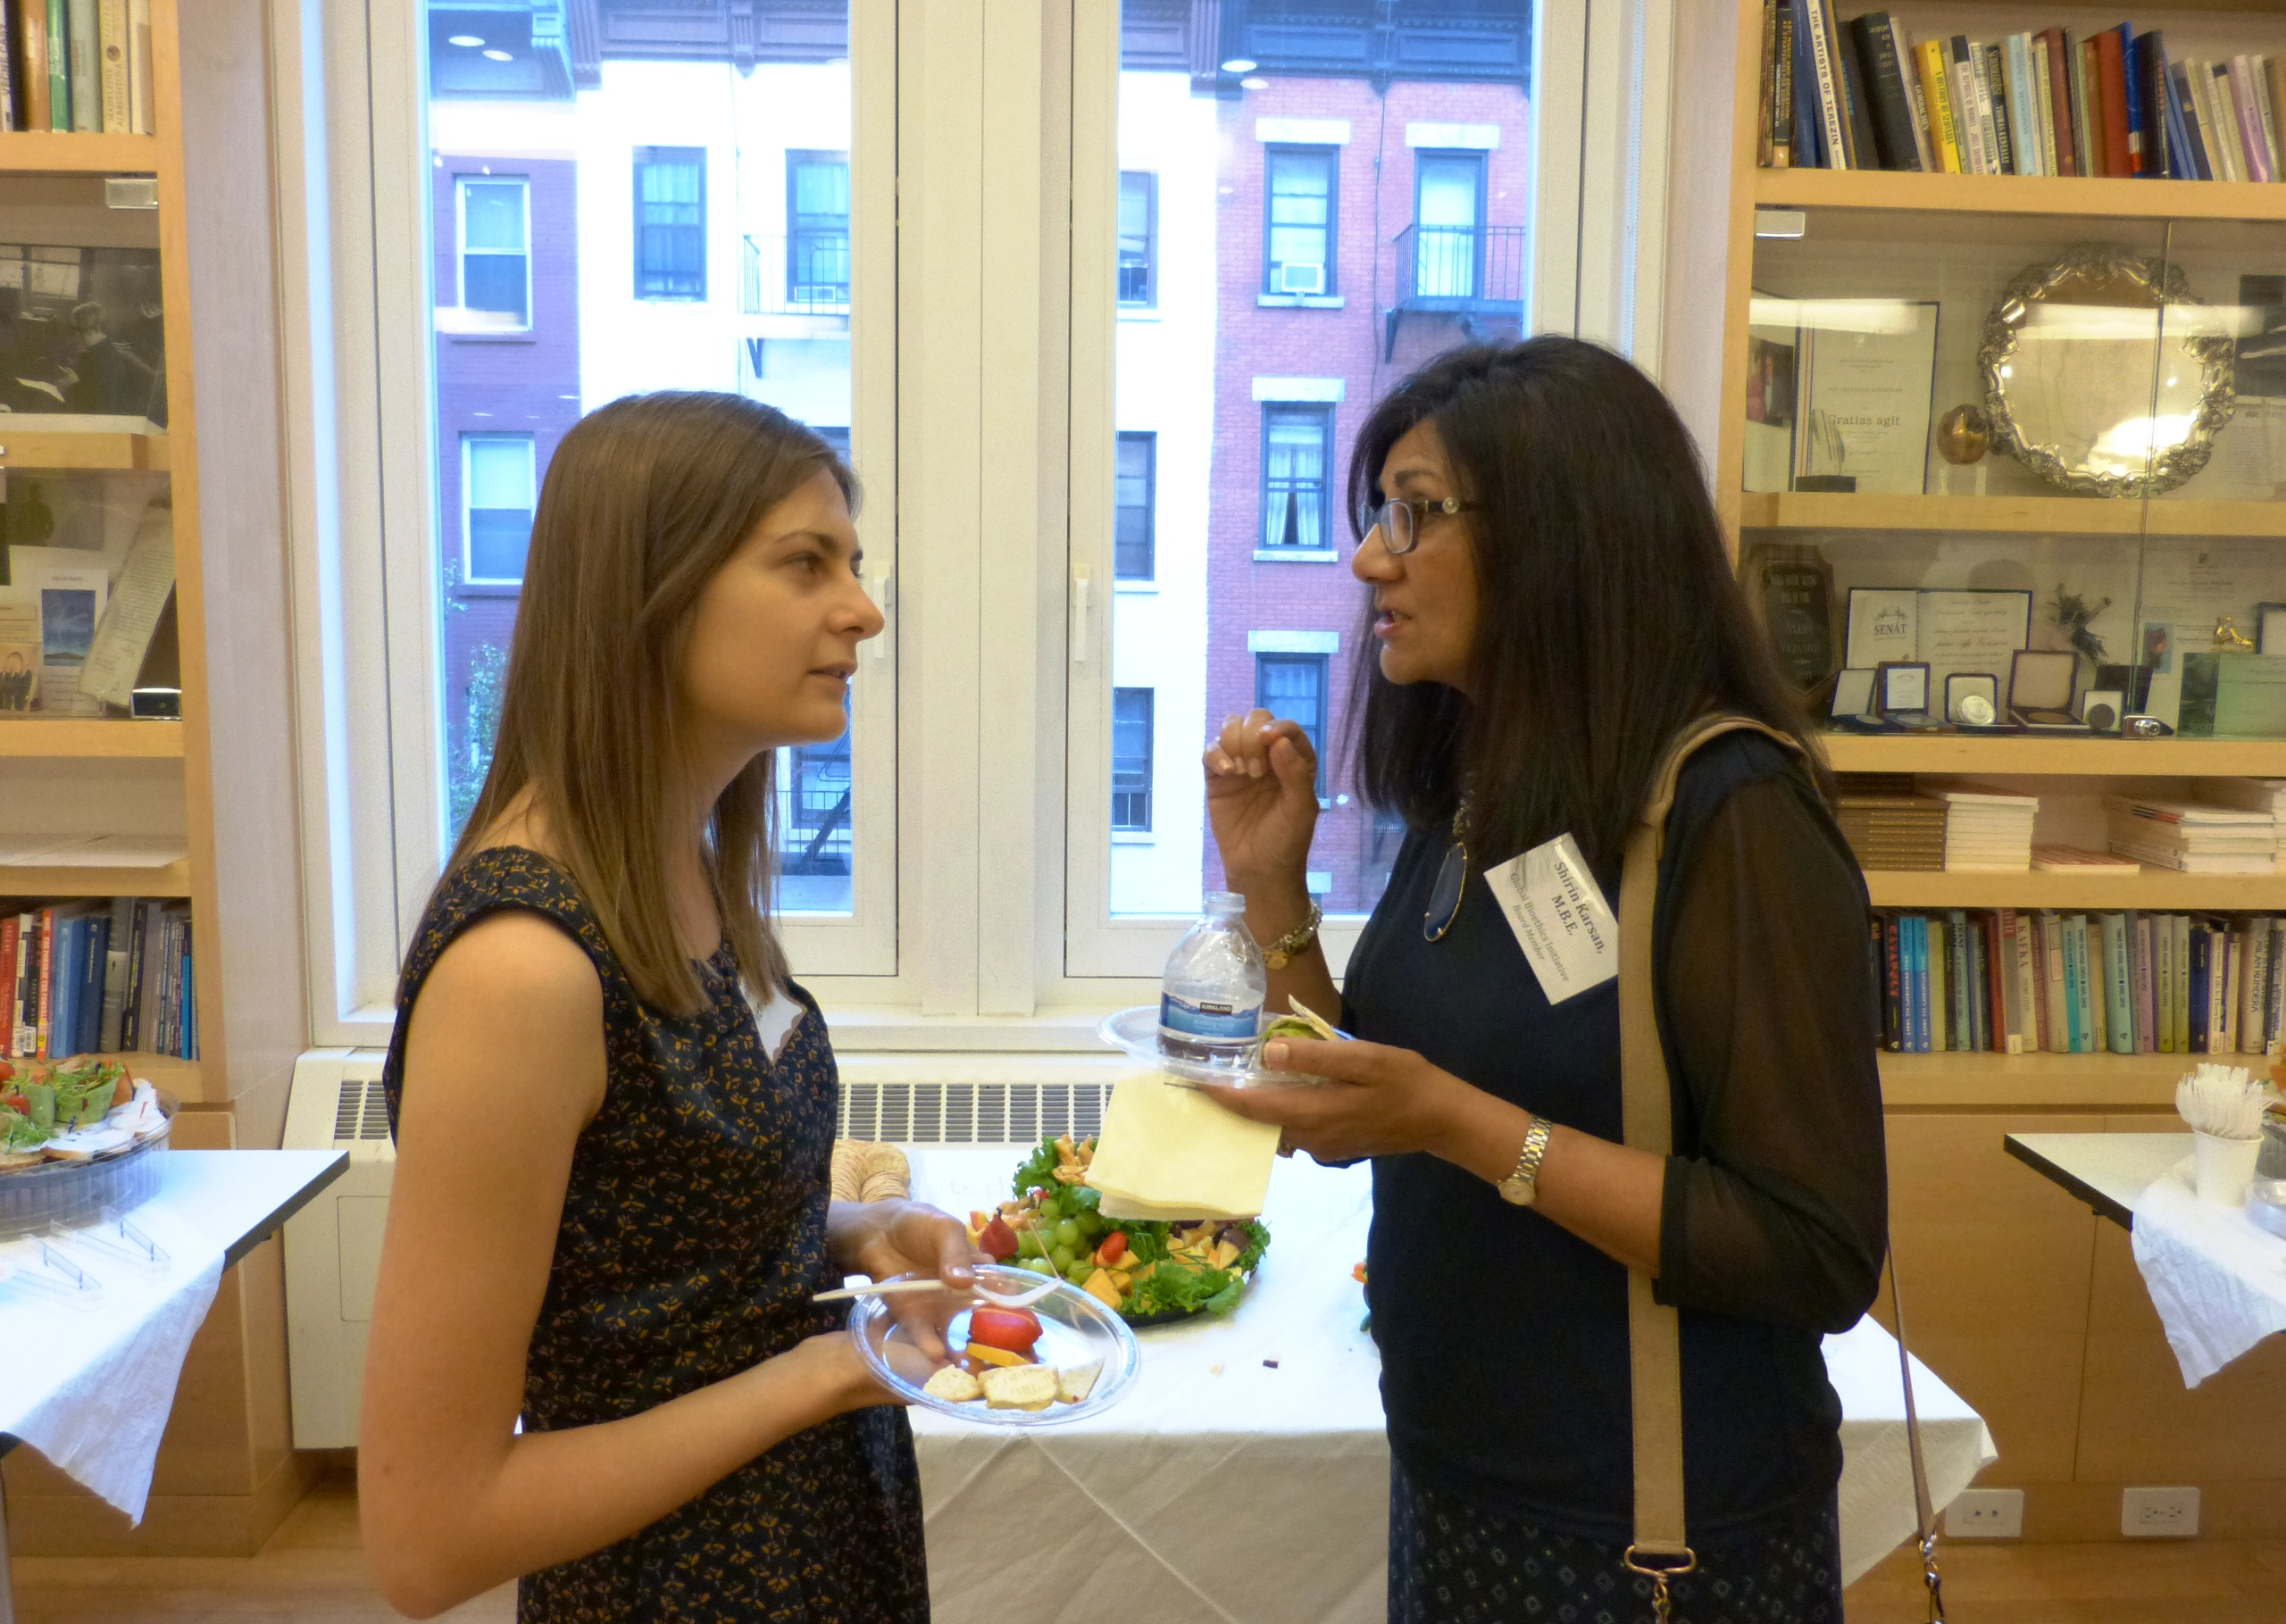 Student Emilia Niemiec chatting with lecturer Shirin Karsan.